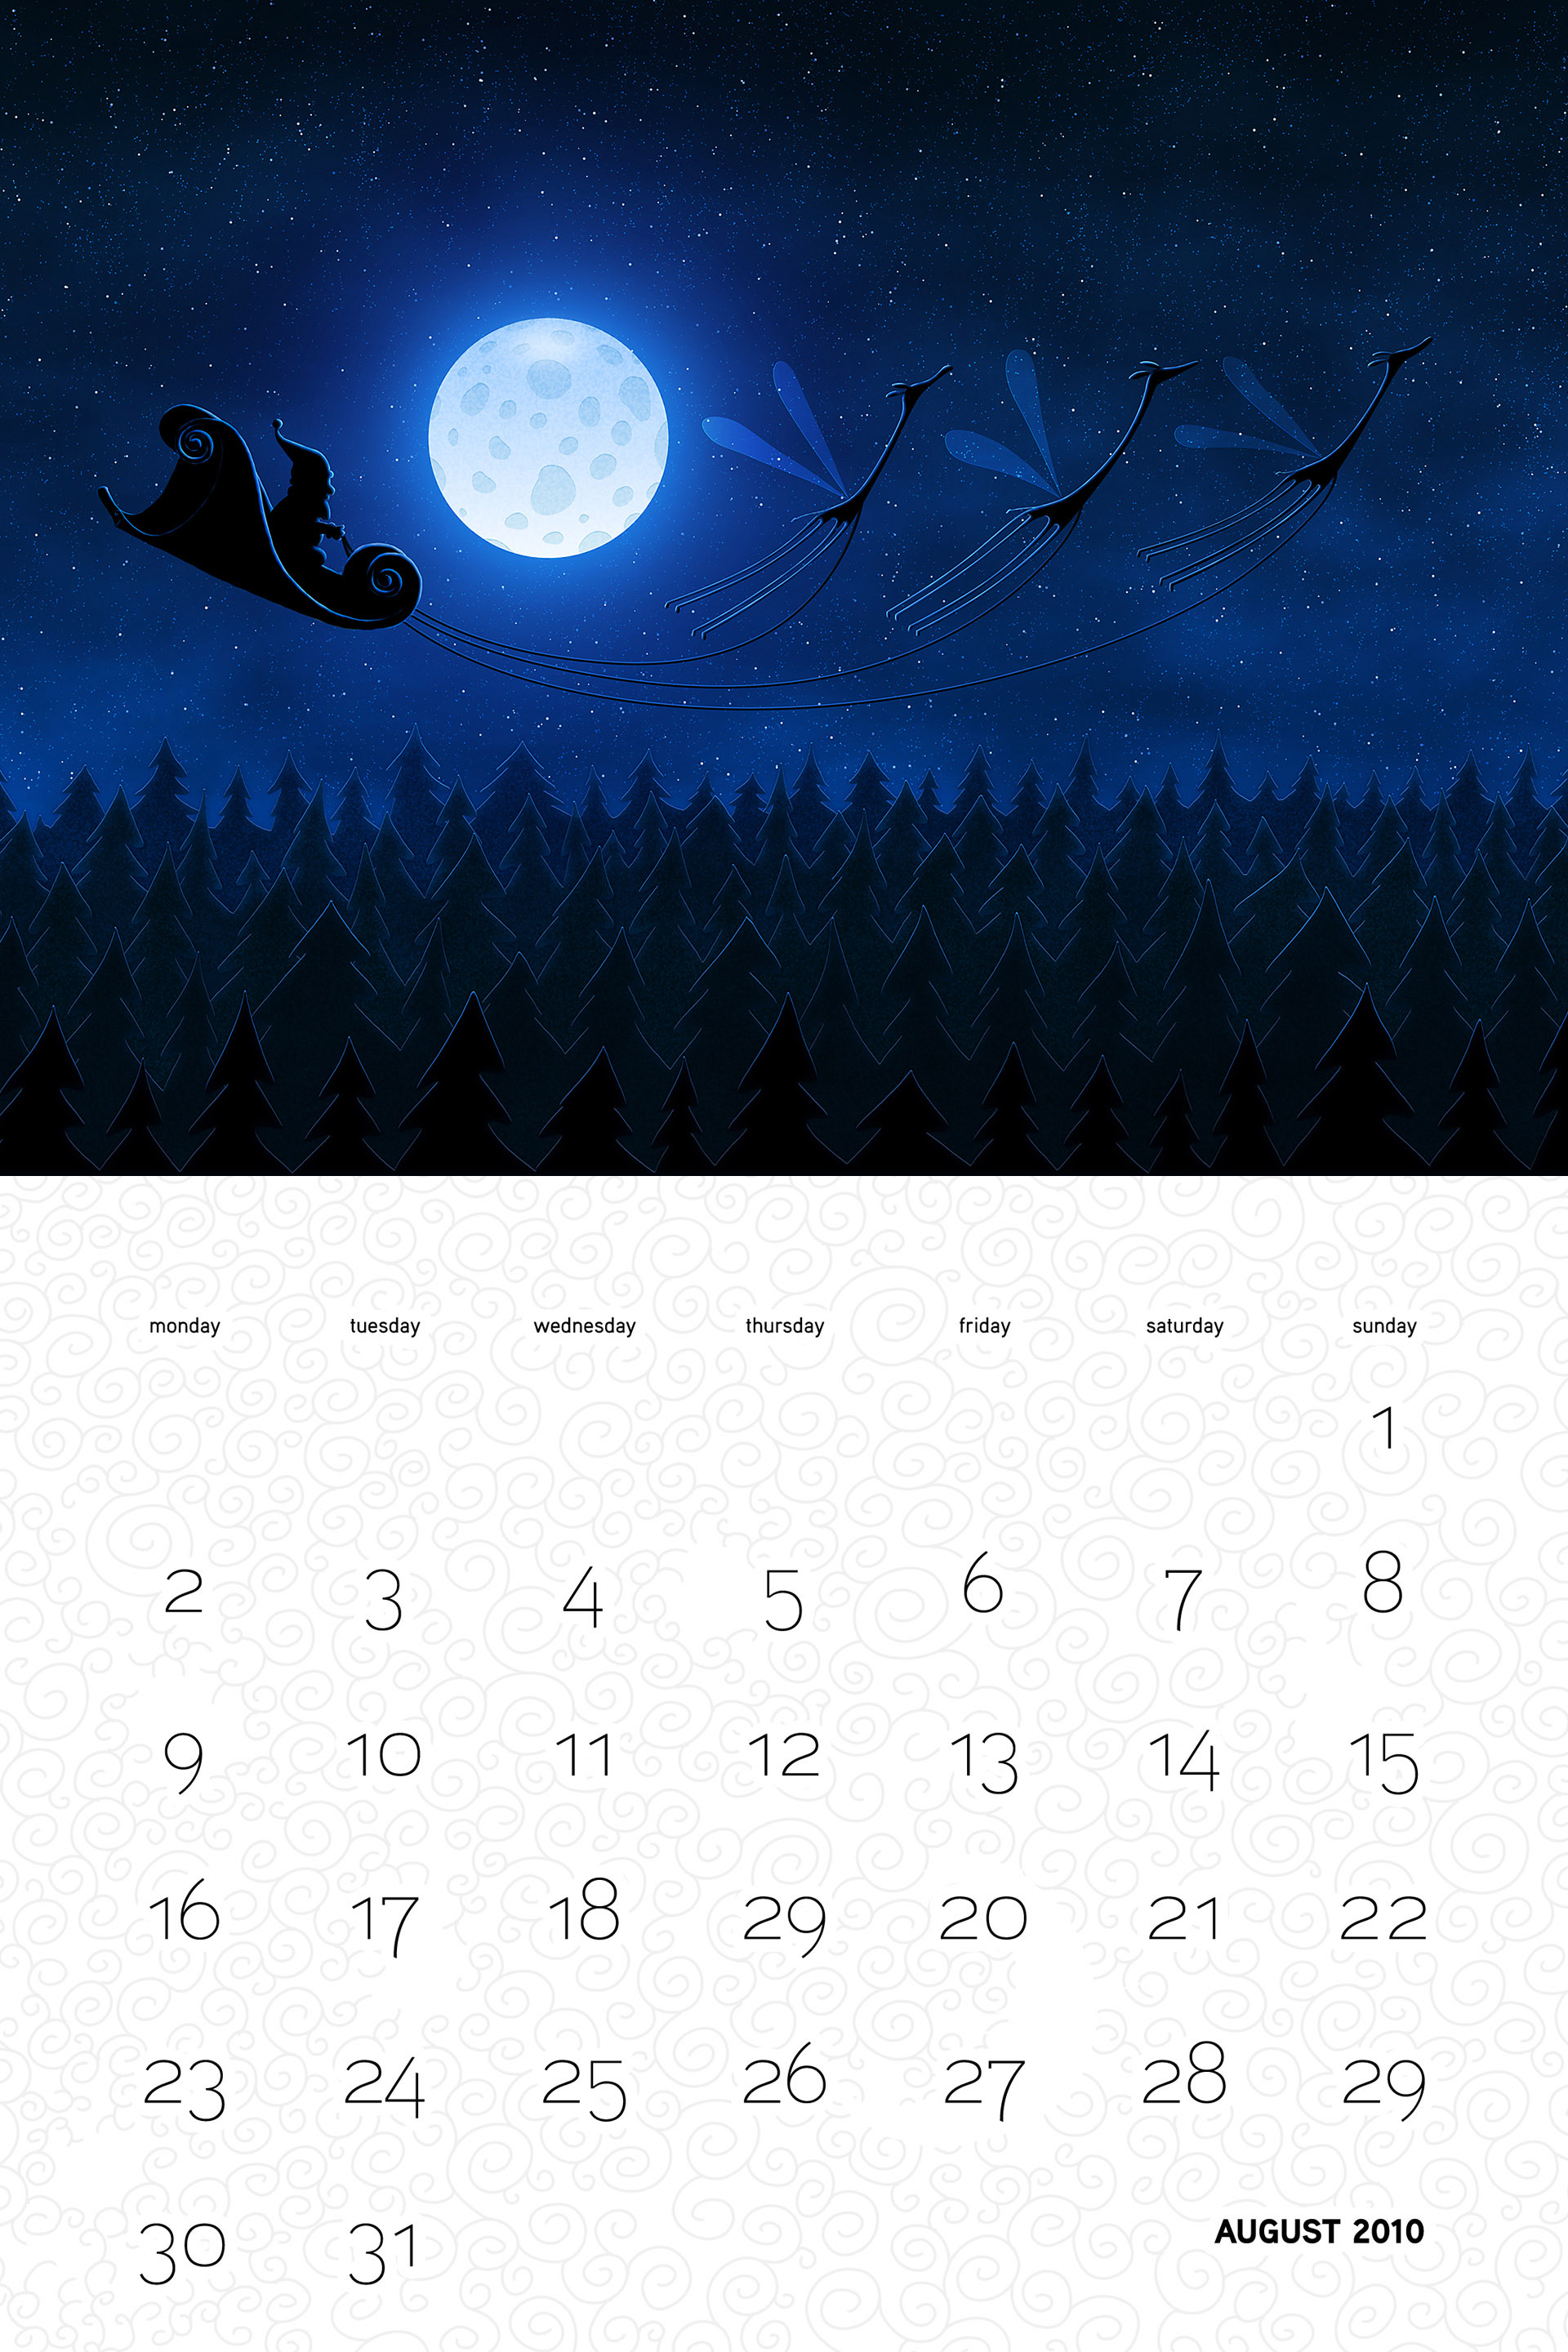 Vlad Christmas Calendar Wallpaper 26275